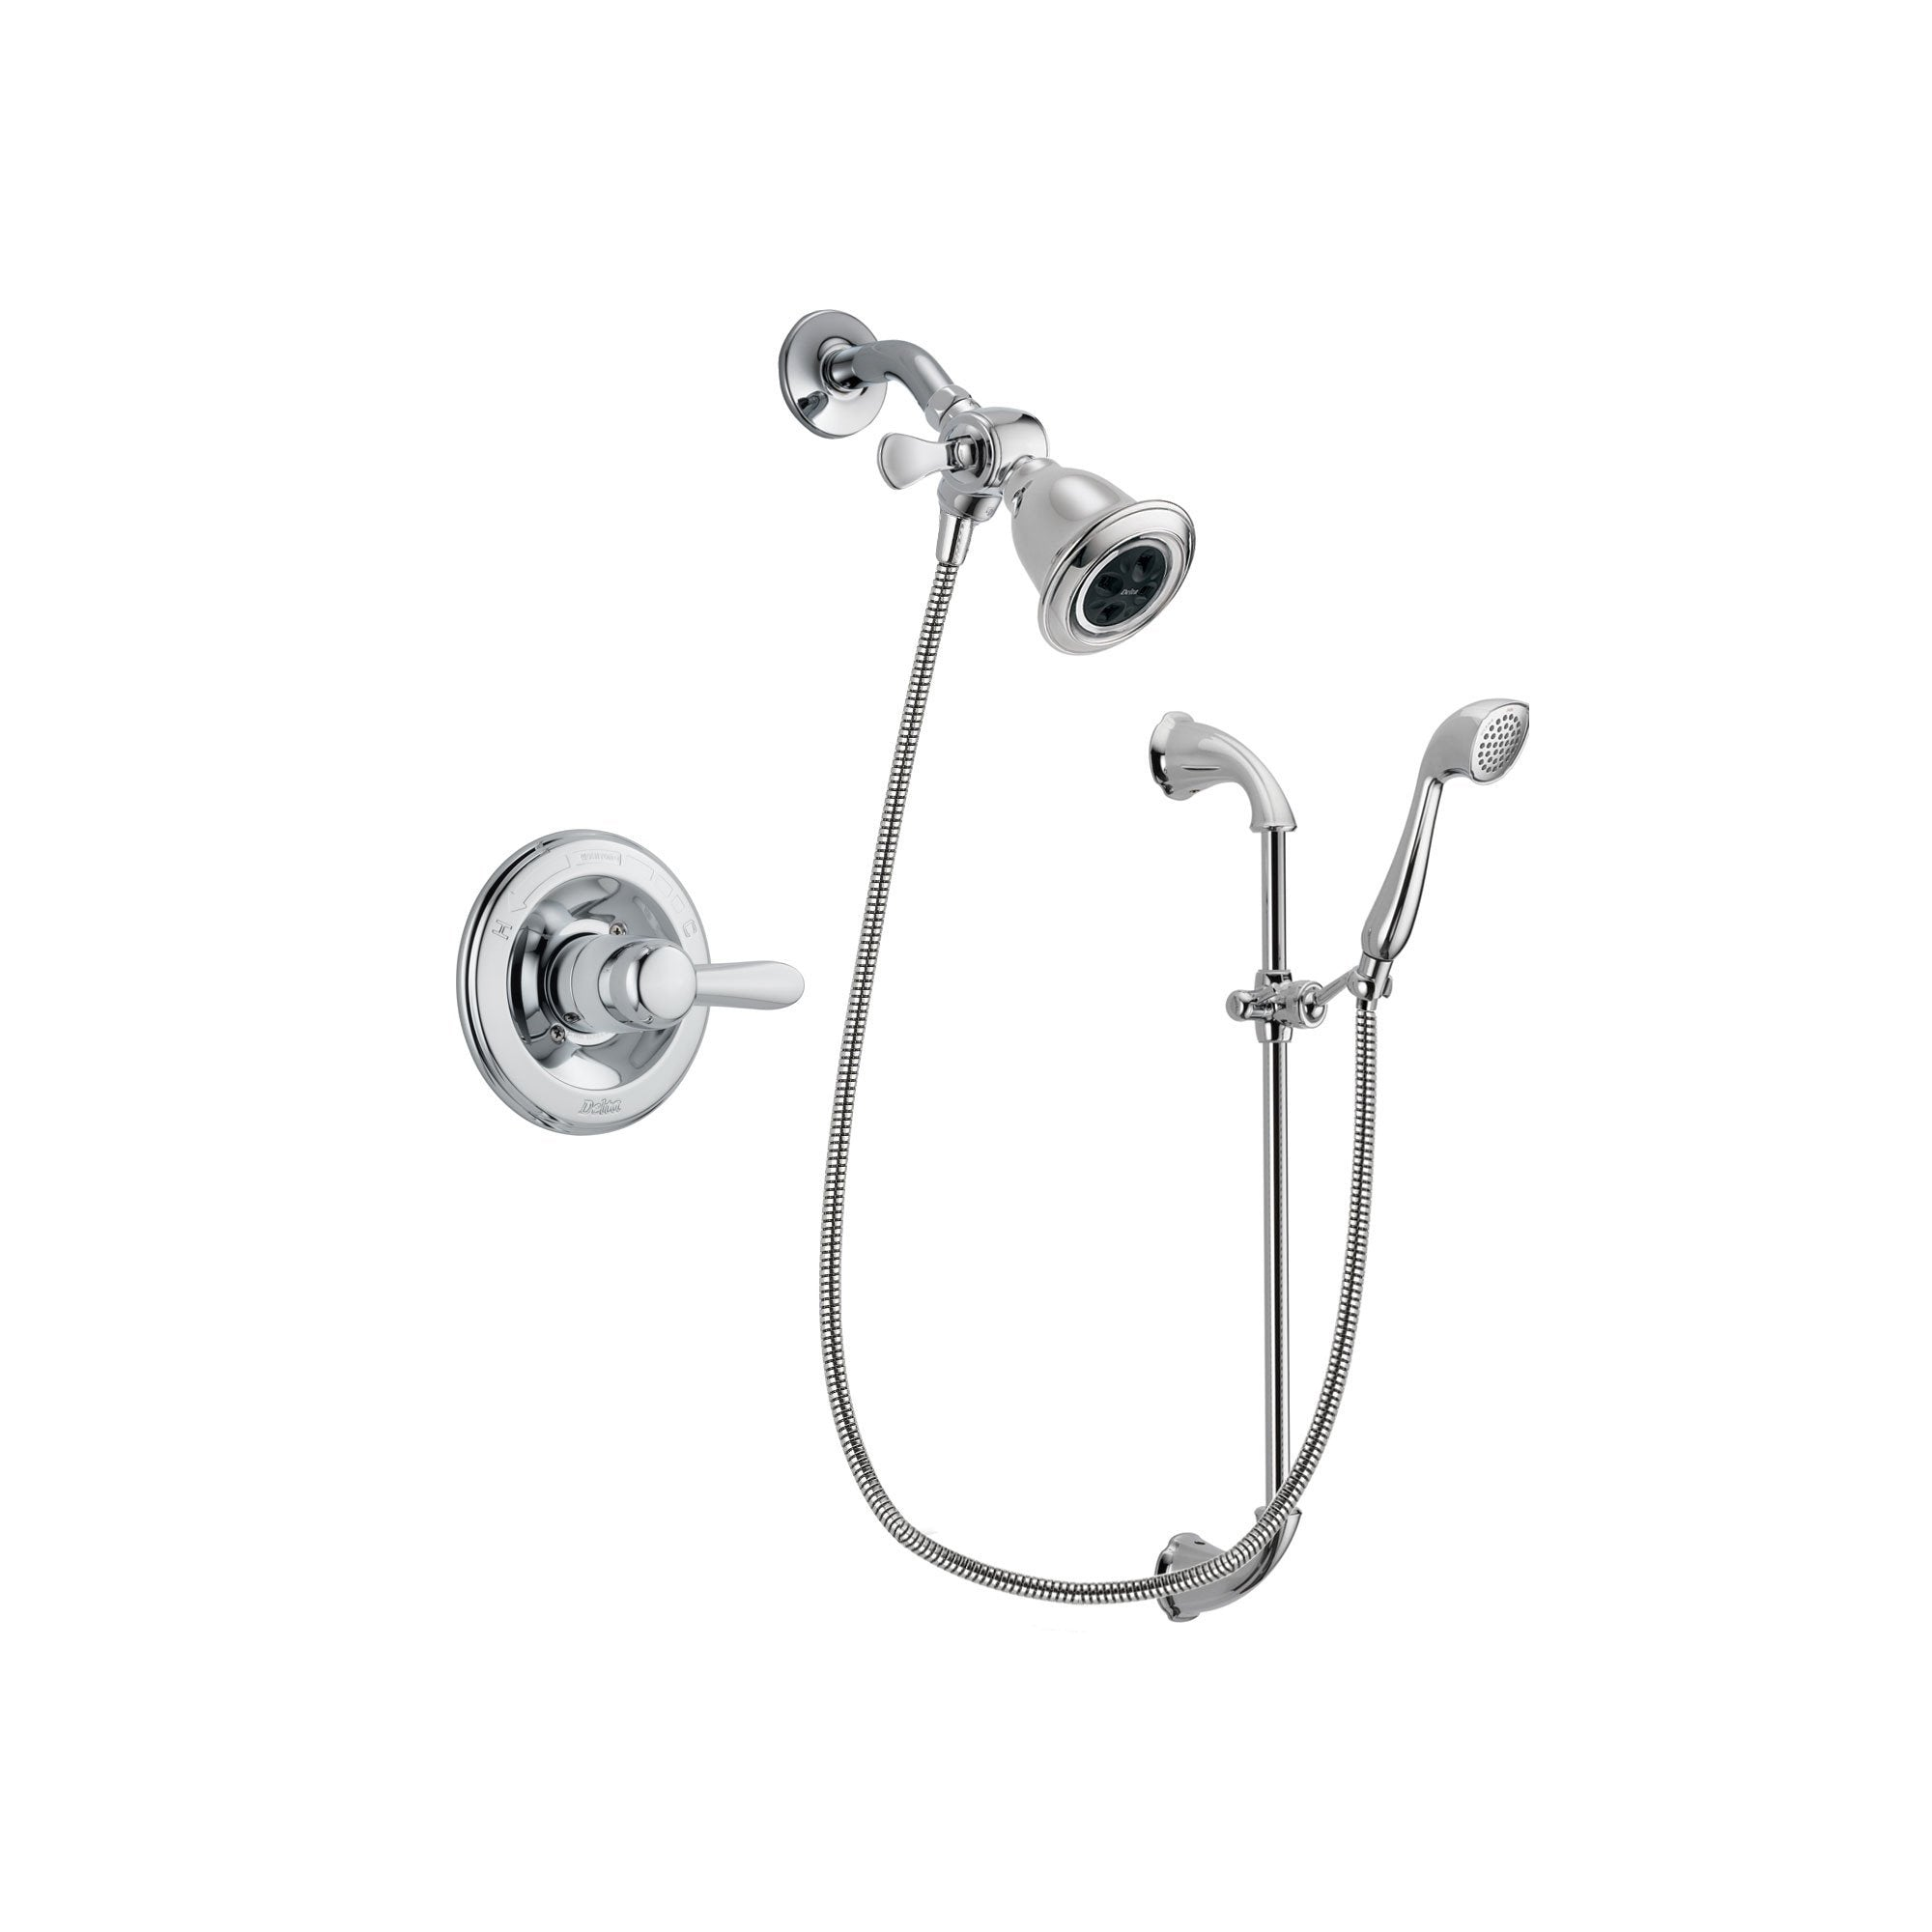 Delta Lahara Chrome Finish Shower Faucet System Package with Water Efficient Showerhead and Handheld Shower with Slide Bar Includes Rough-in Valve DSP0878V